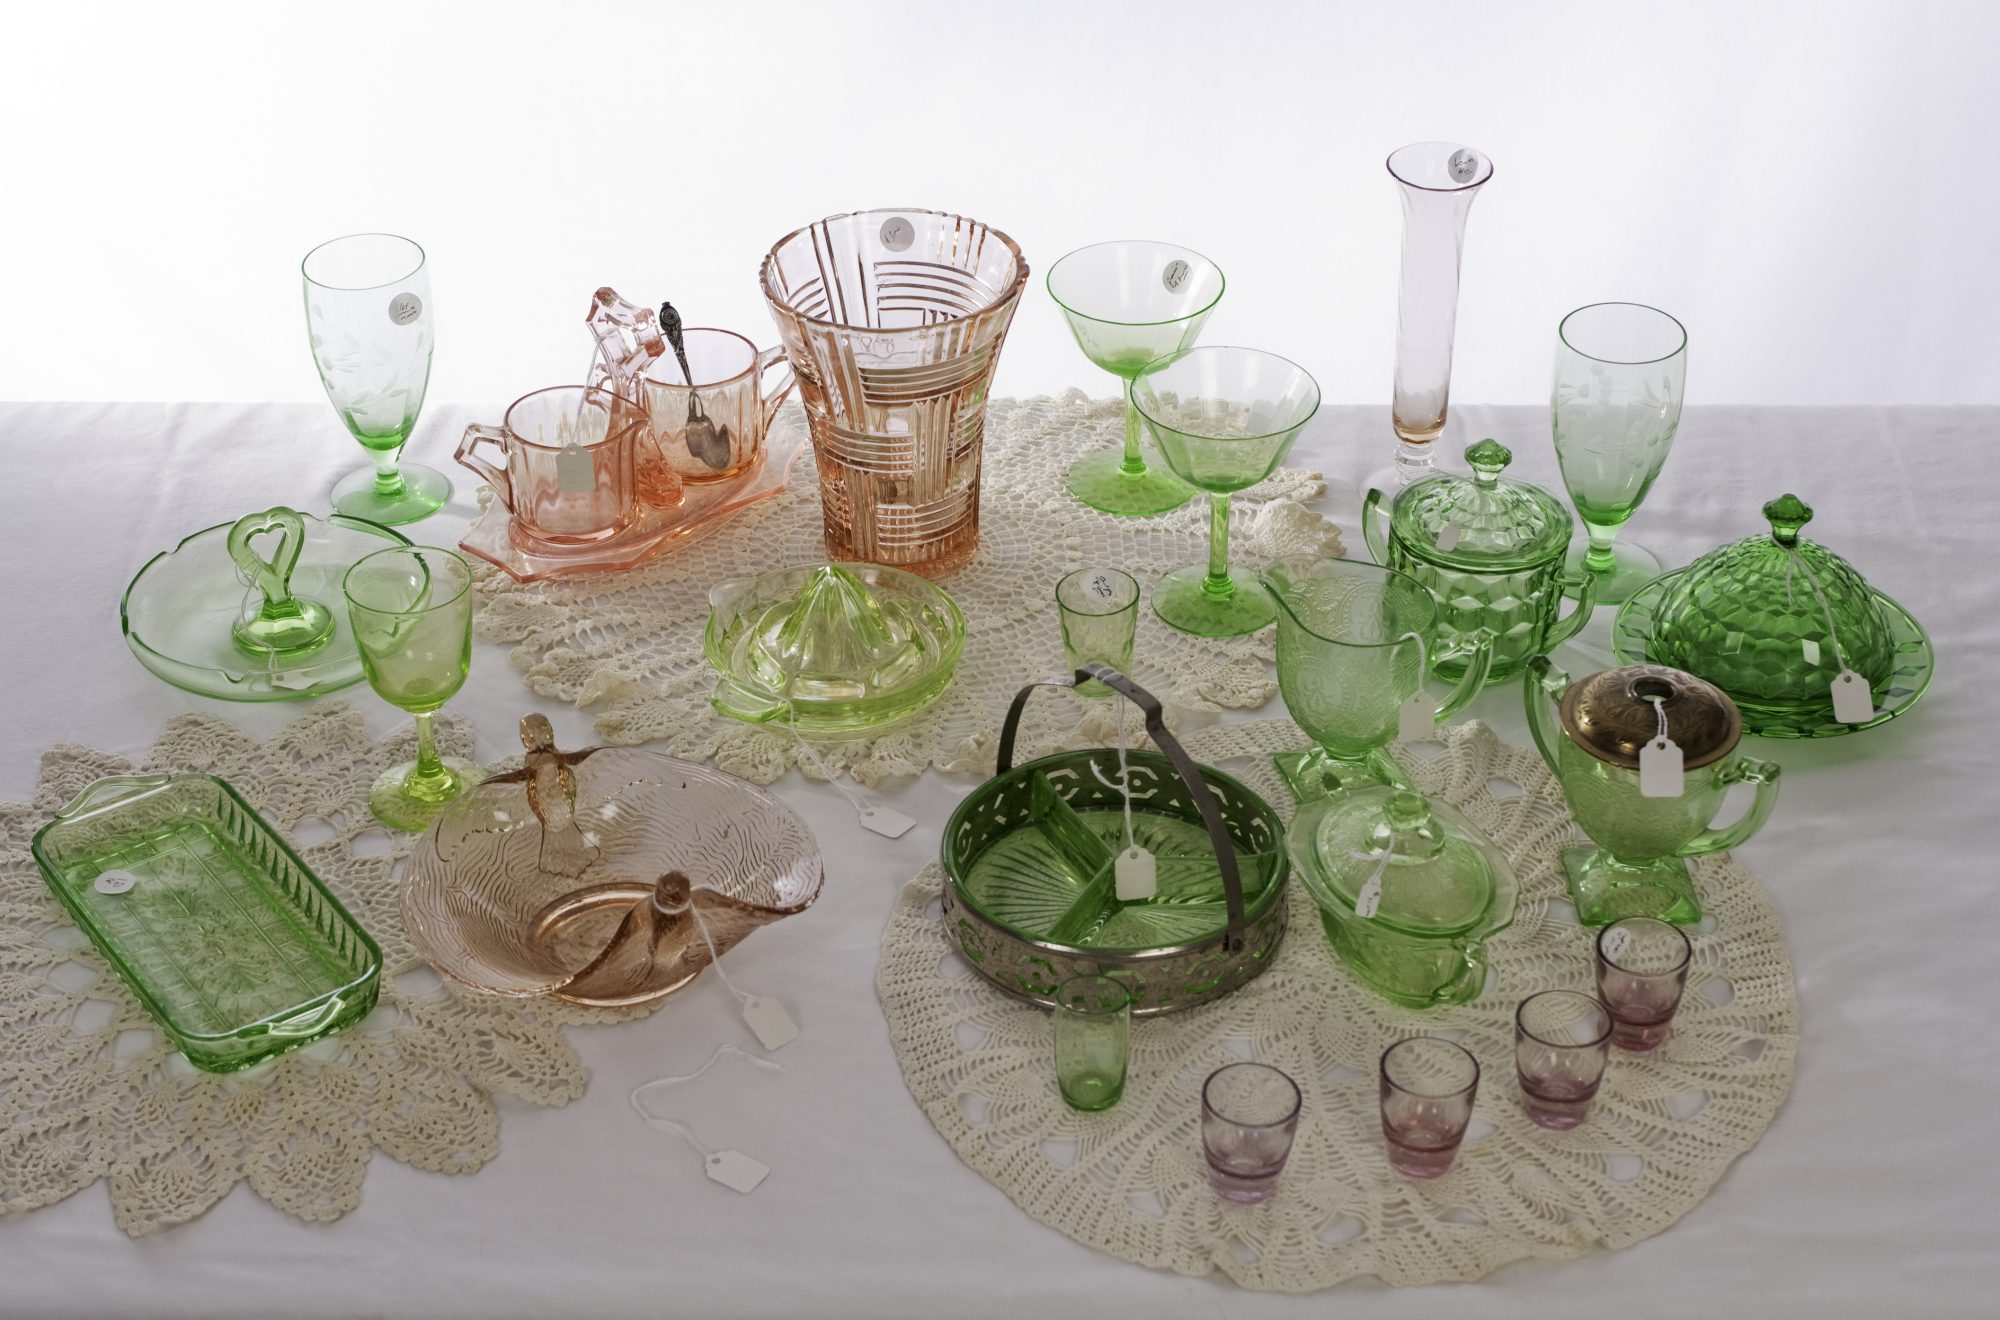 the beginner's guide to collecting depression glass